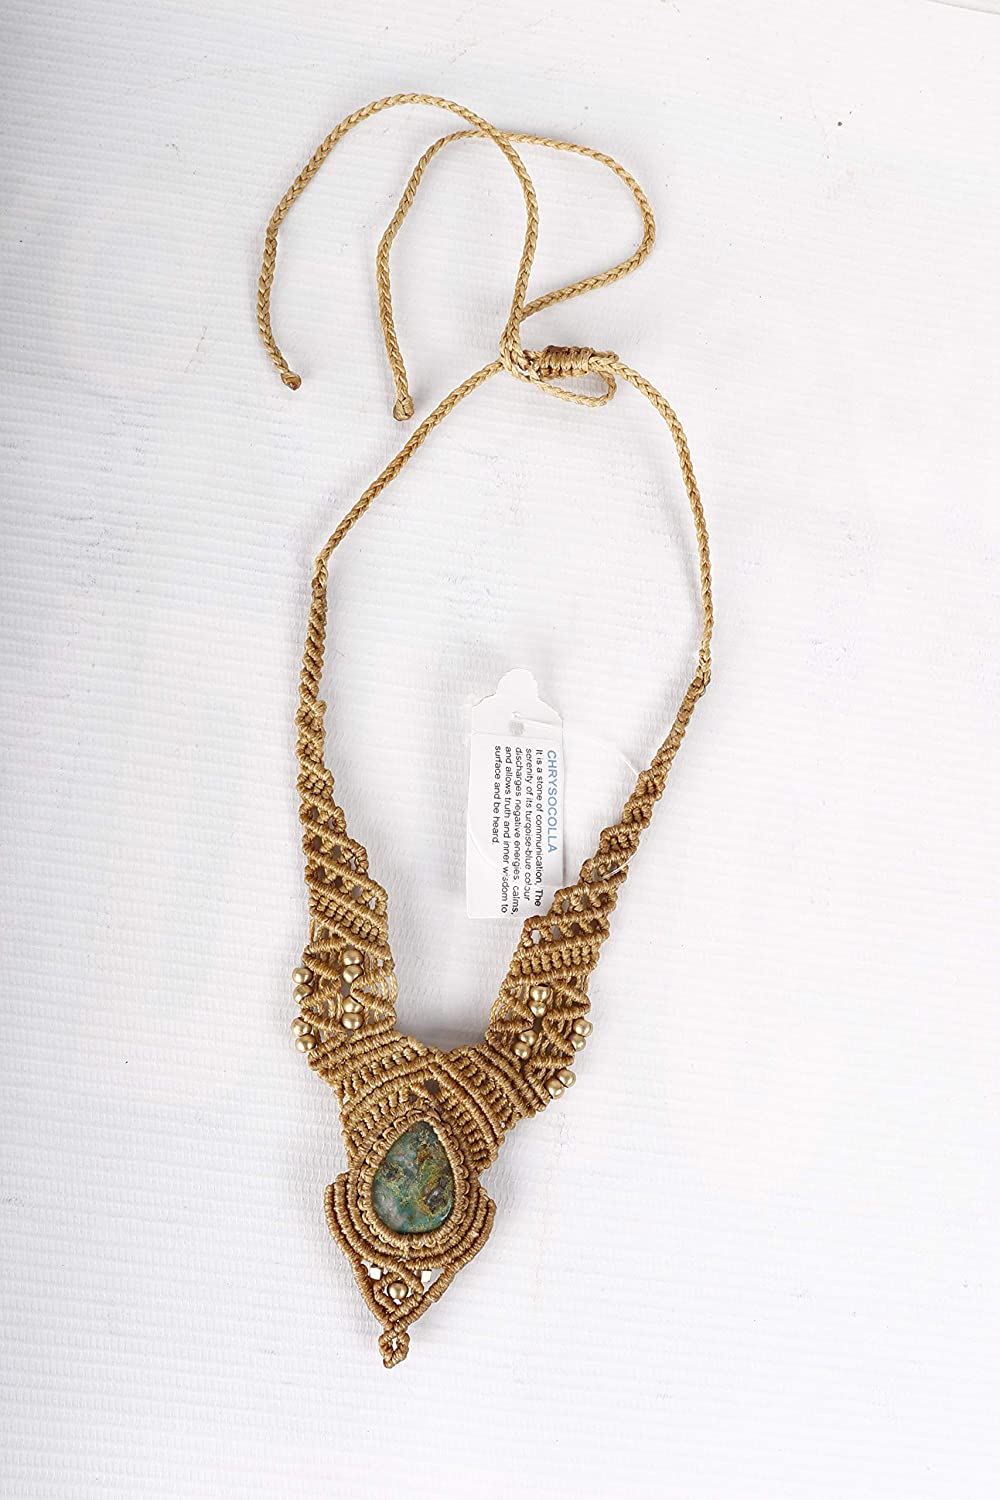 Handmade Macrame Some reservation Necklace Chick Chrysocolla Ston Our shop most popular Jewelry Pendant